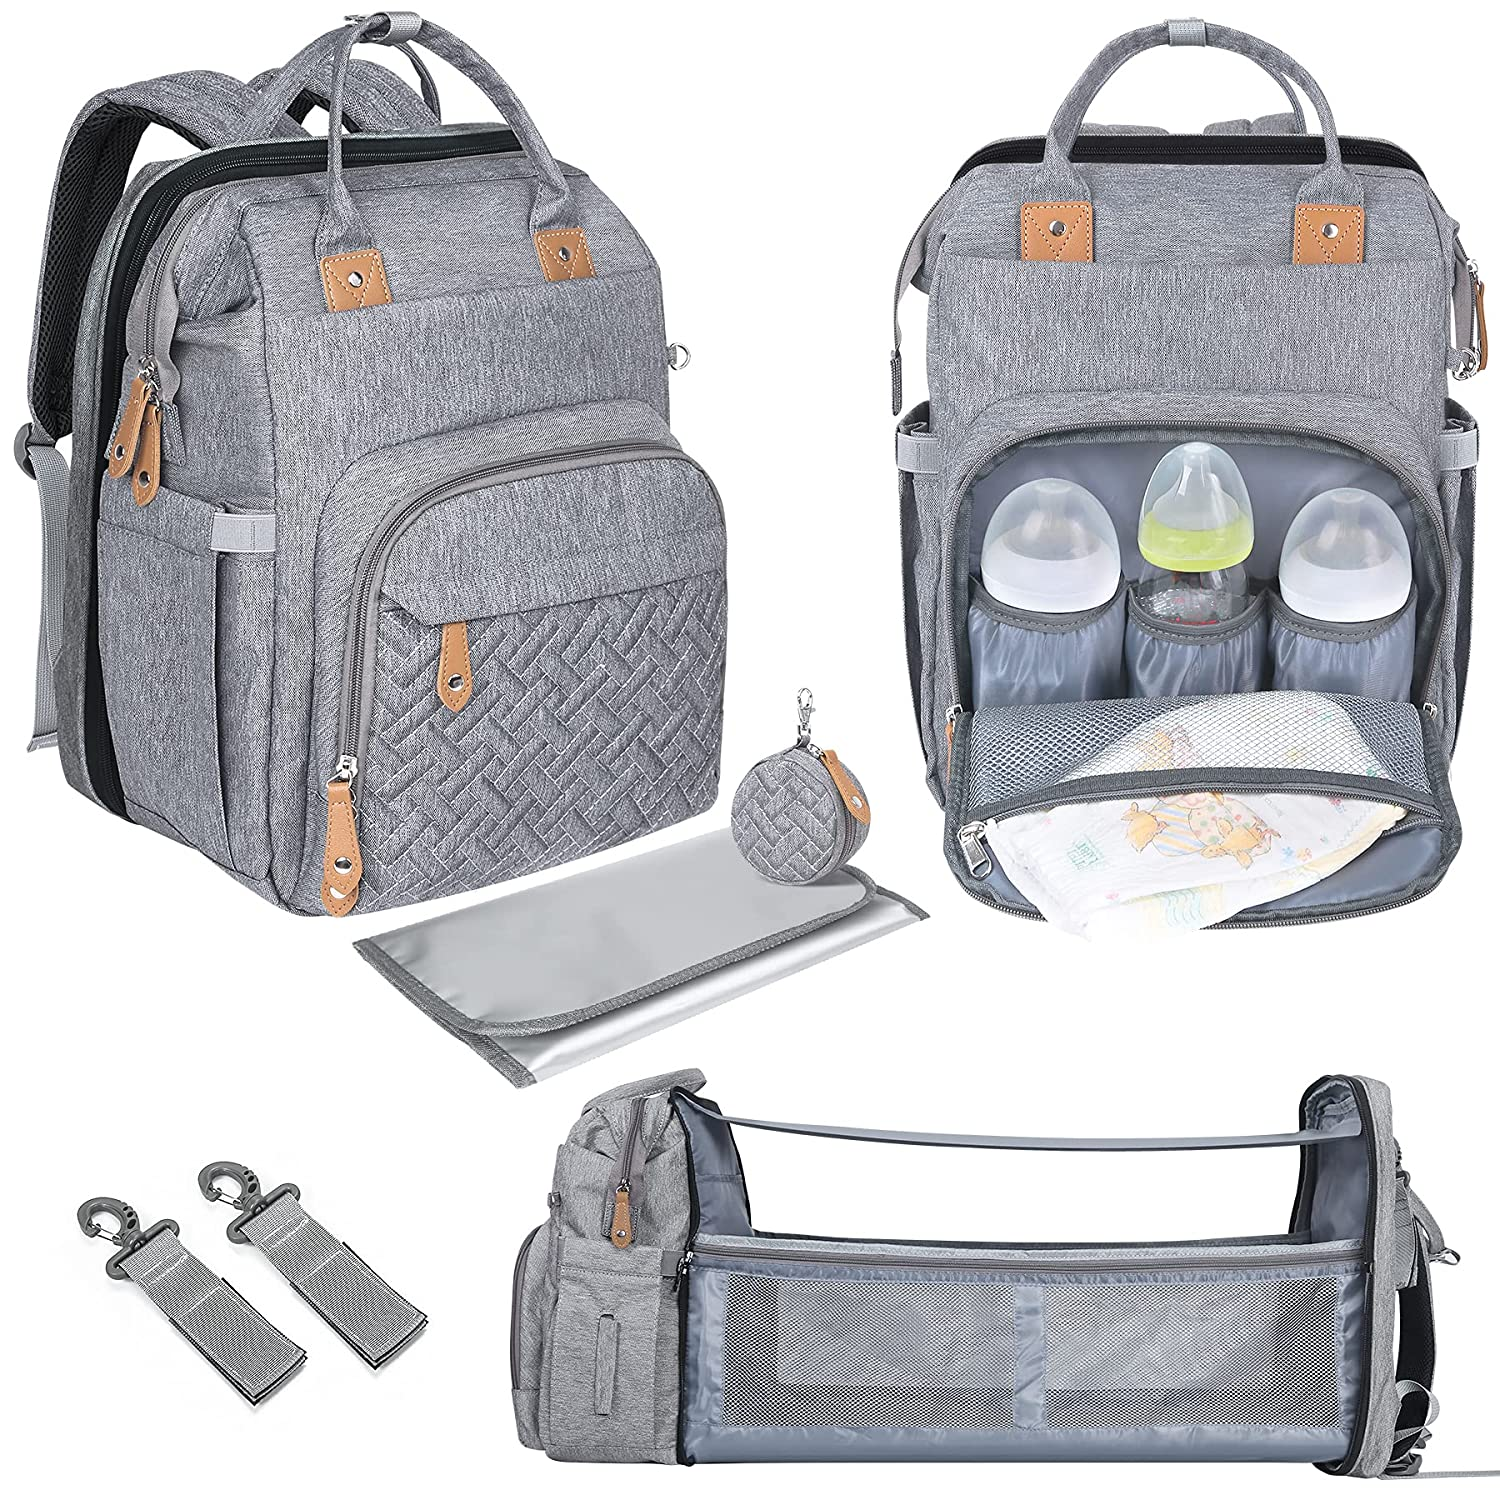 Diaper Bag Backpack with Changing Bed Travel Bassinet Station, Pacifier Case and Stroller Straps, Soft Changing Pad, Large Capacity, Multifunctional Pockets, Stylish Style for Mom and Dad - Grey